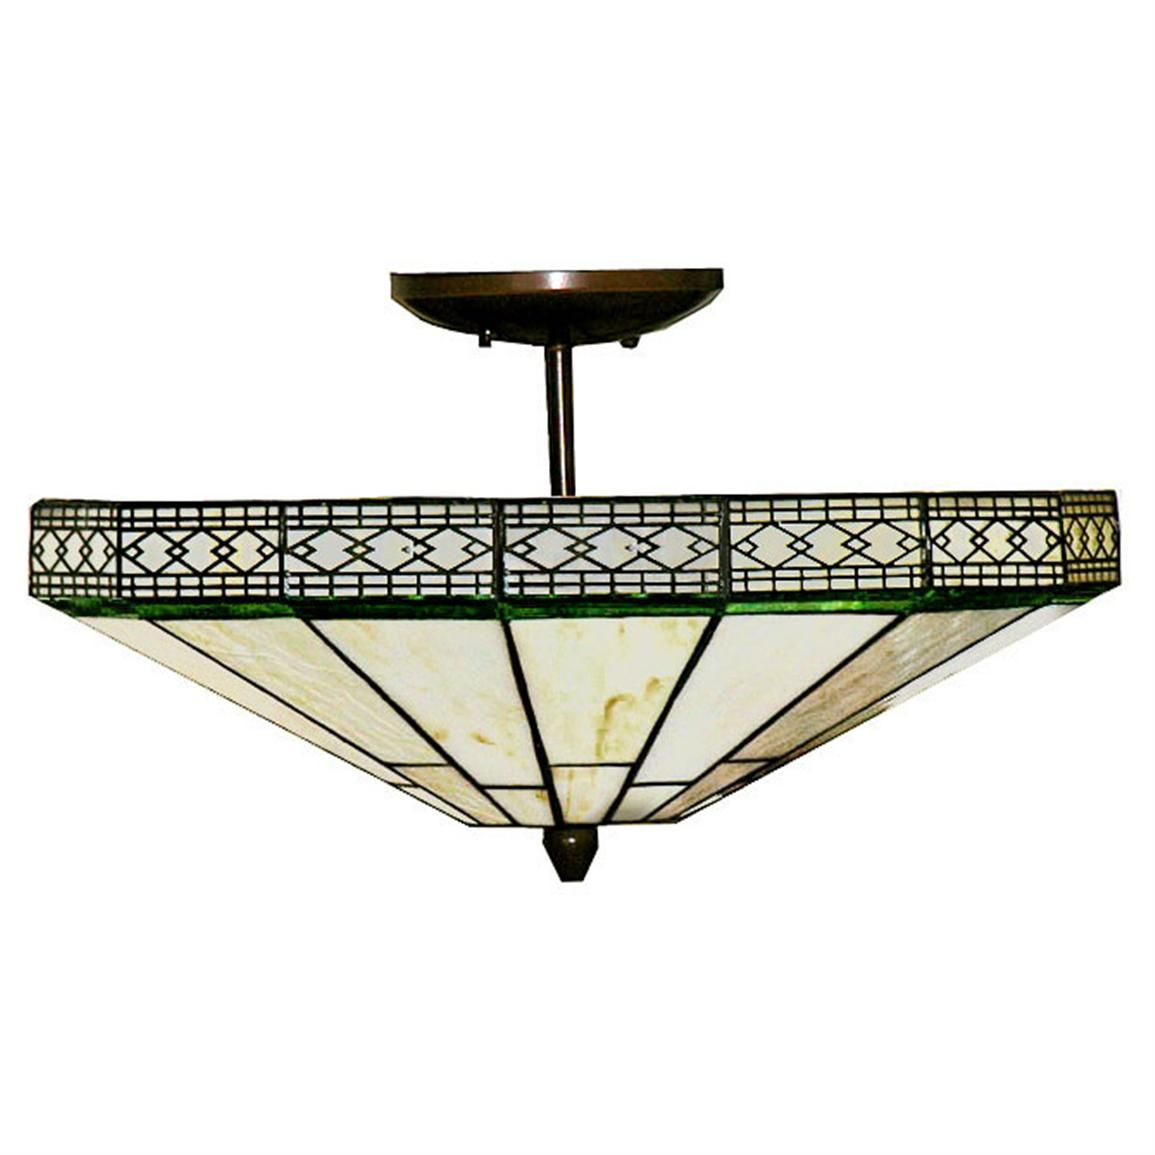 Tiffany style 2 light semi flush ceiling light dinning room tiffany style 2 light semi flush ceiling light 224765 lighting at sportsmans guide aloadofball Choice Image